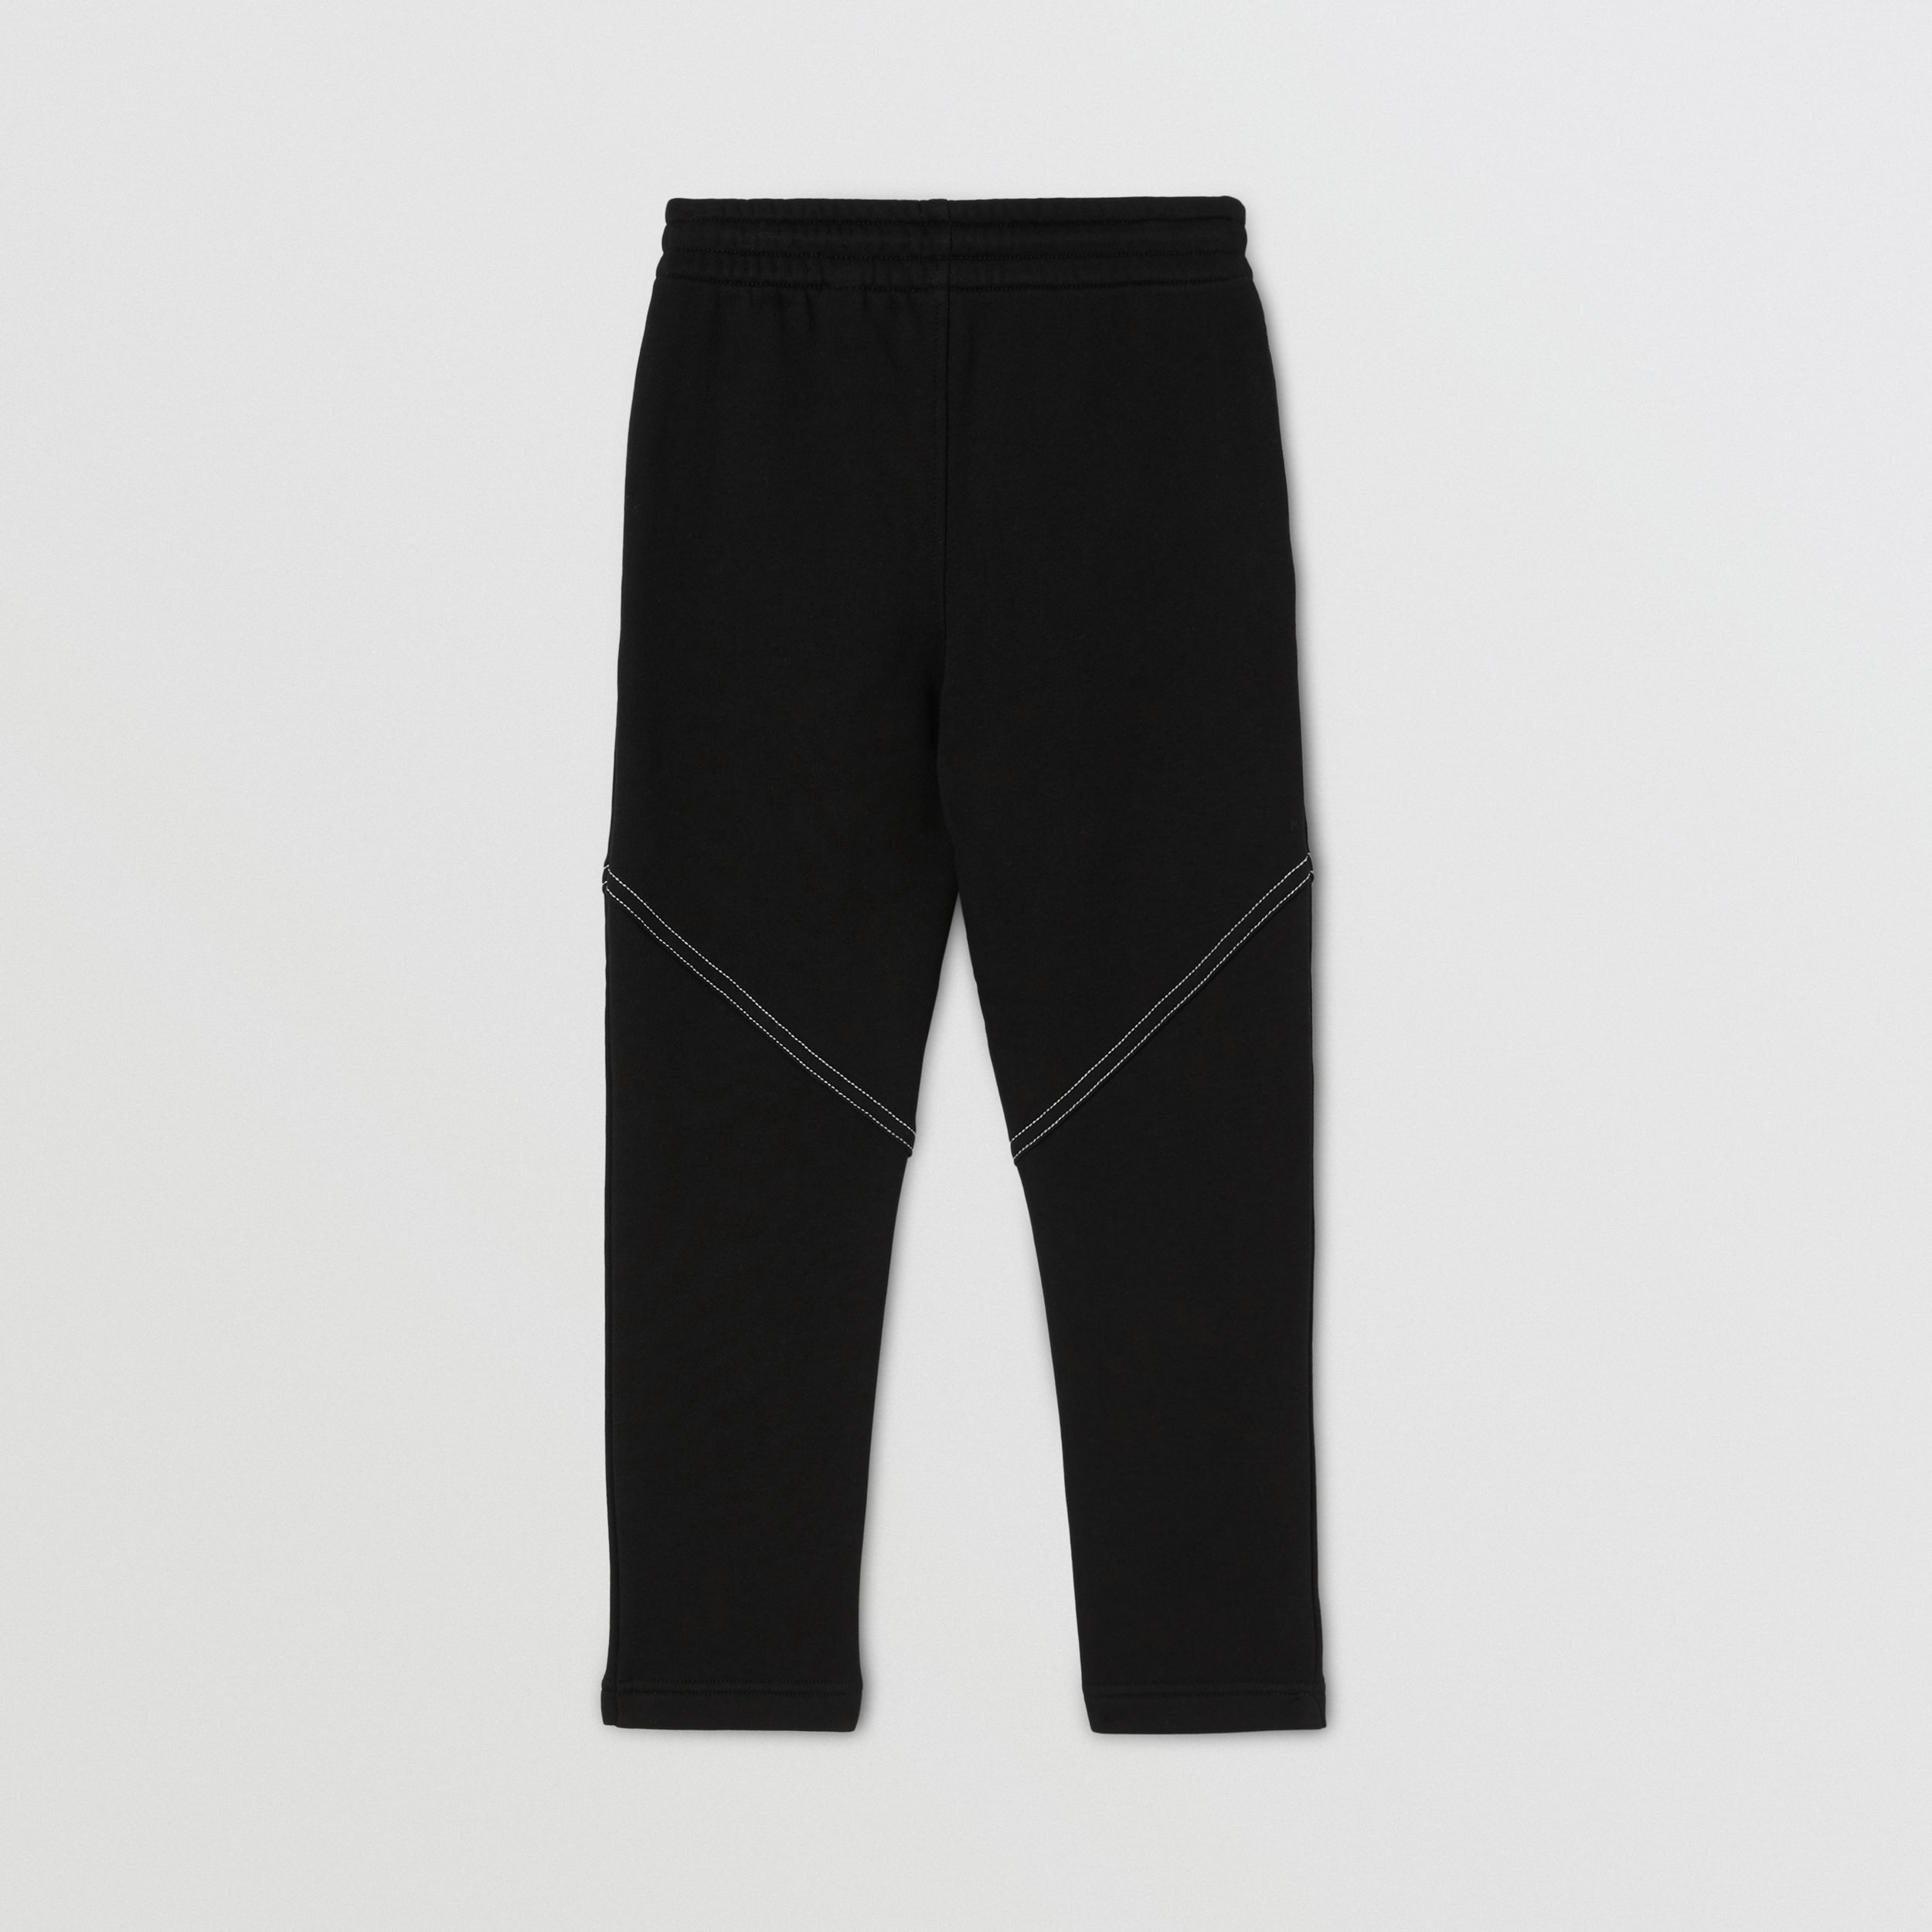 Logo Print Cotton Jogging Pants in Black | Burberry - 4